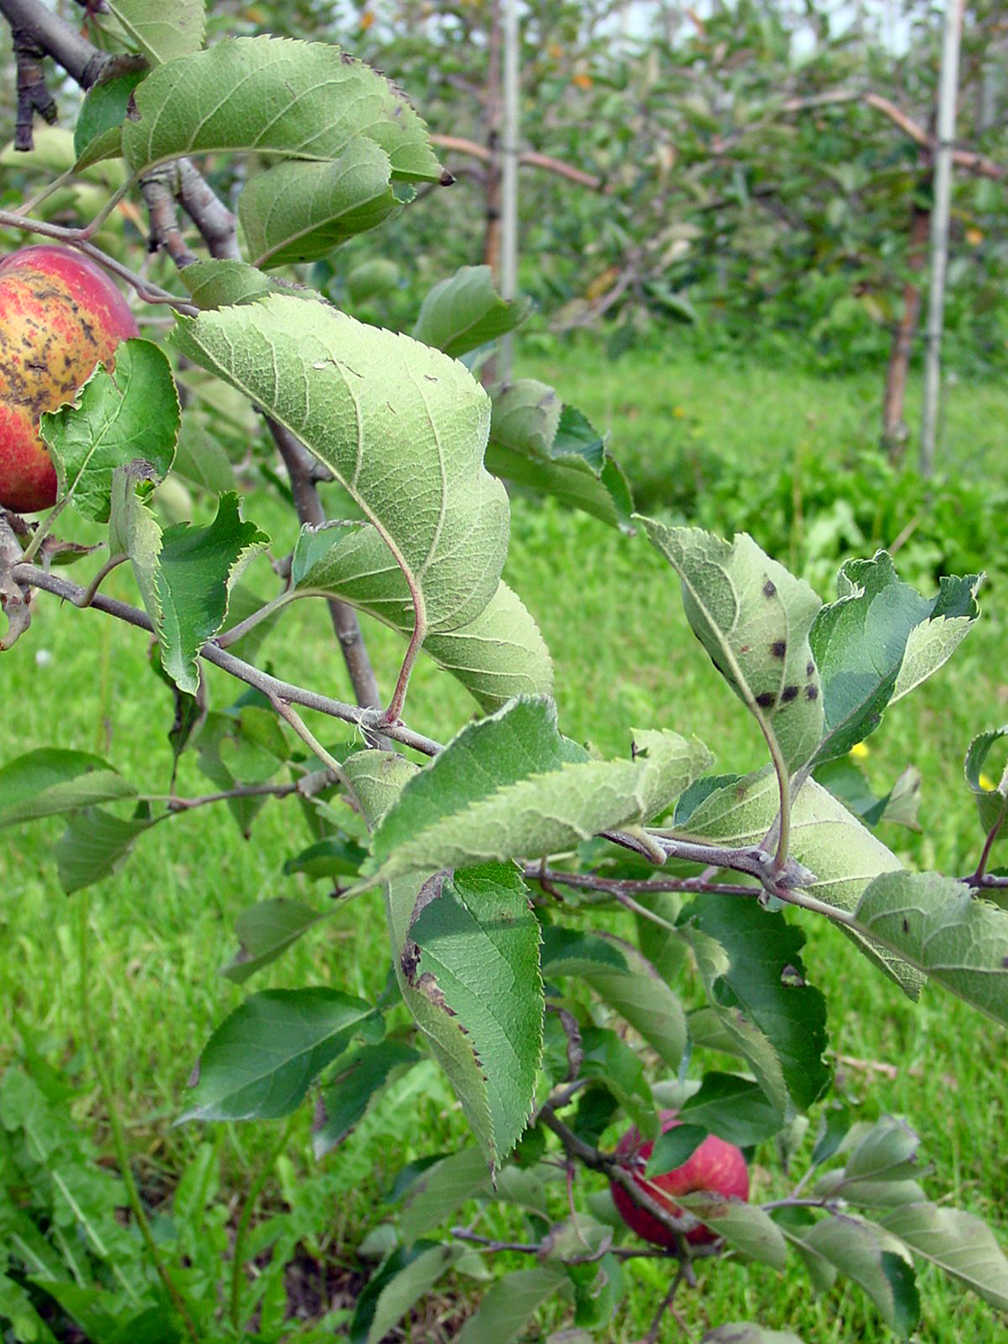 AgroPages-Potential biofungicide against apple scab tested ...